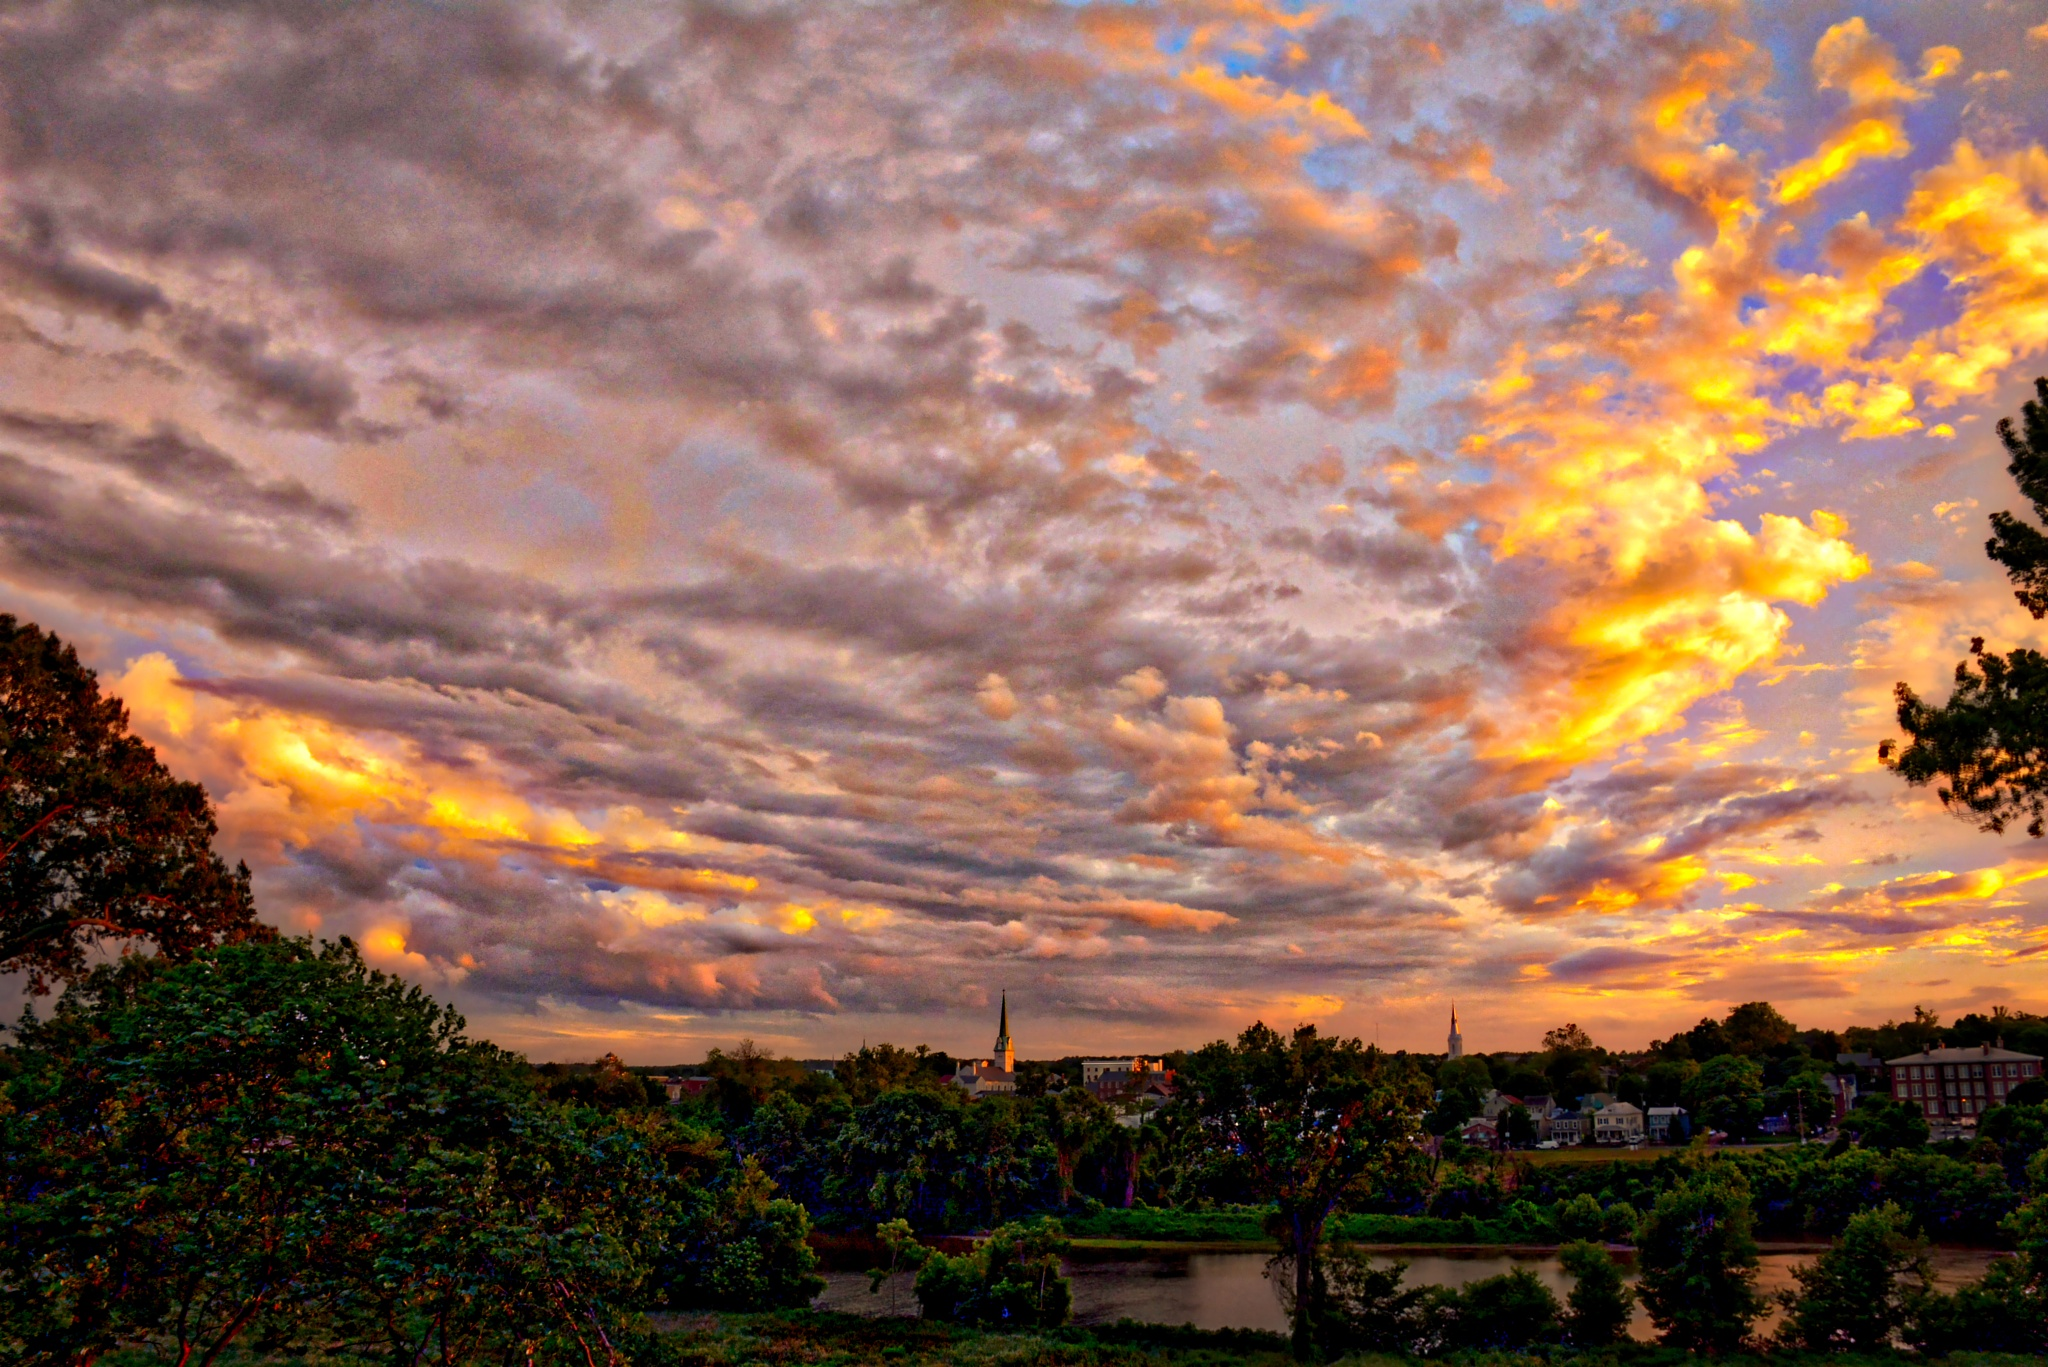 Sunset after Storm-Fredericksburg, Virginia by Michael  C. Habina